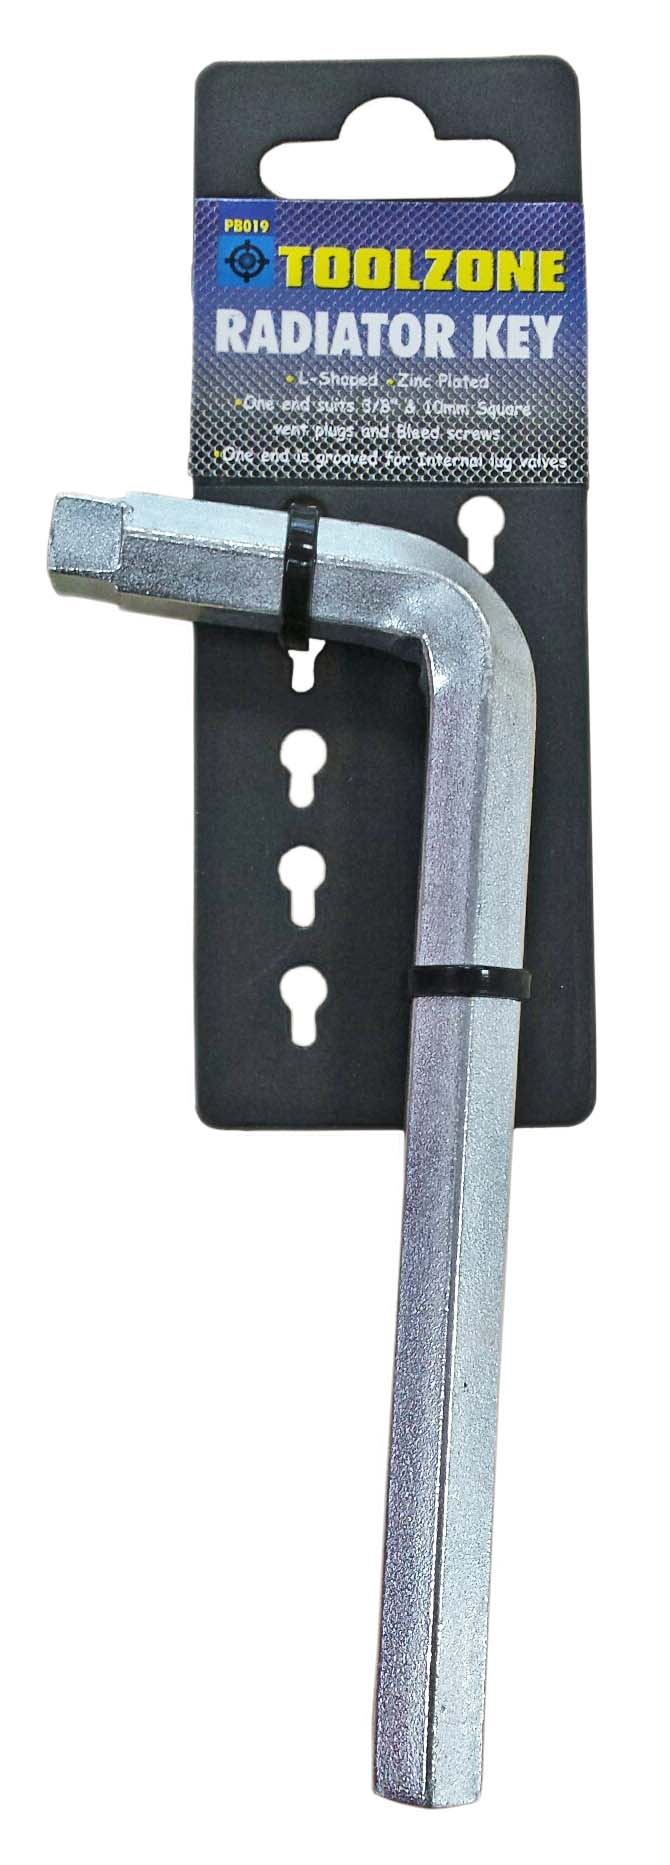 Toolzone Radiator Key L-Shape